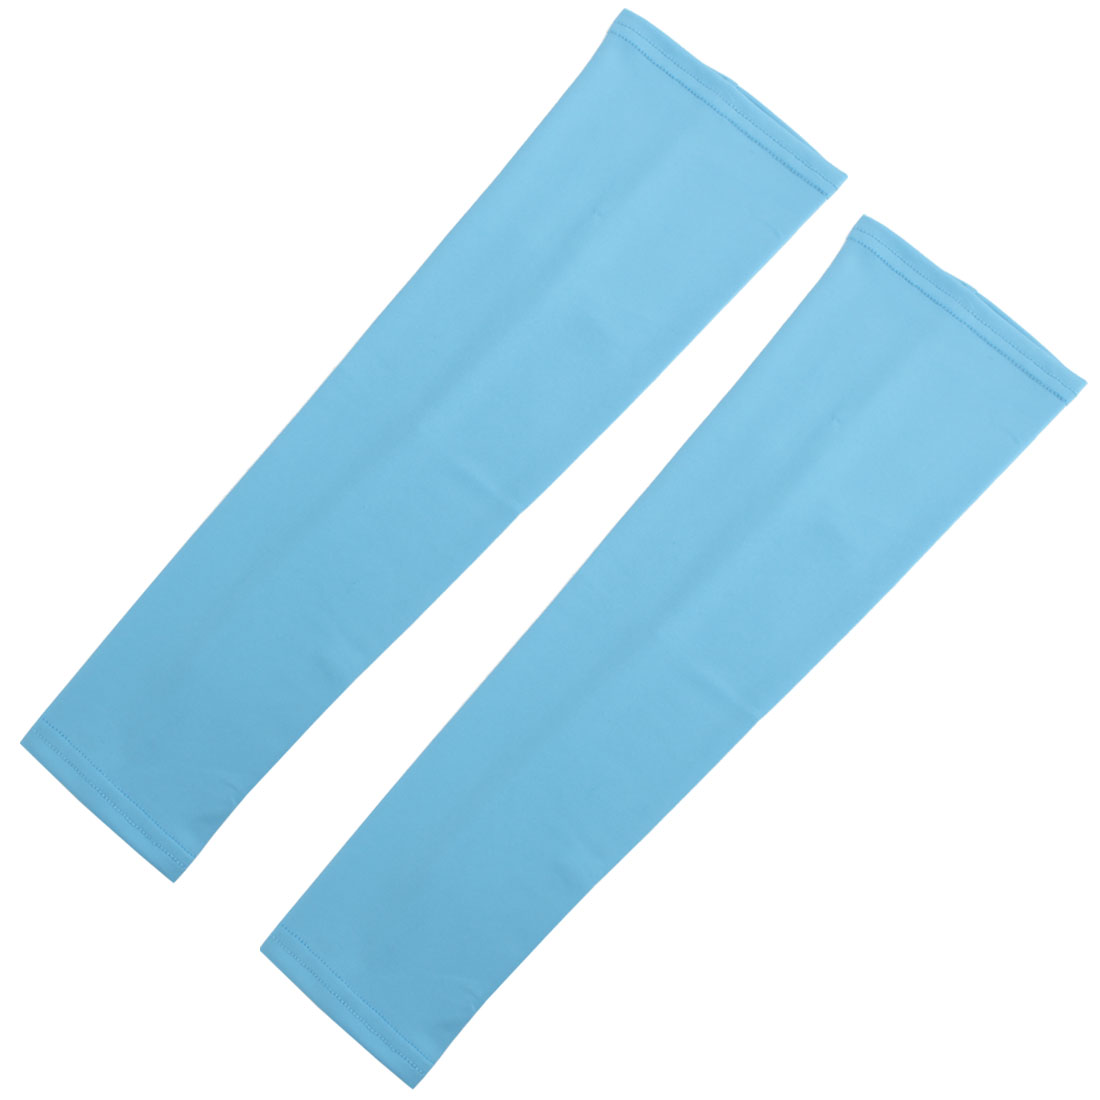 Outdoor Sports Bicycle Cycling Sun Protection Cover Arm Sleeves Sky Blue Pair